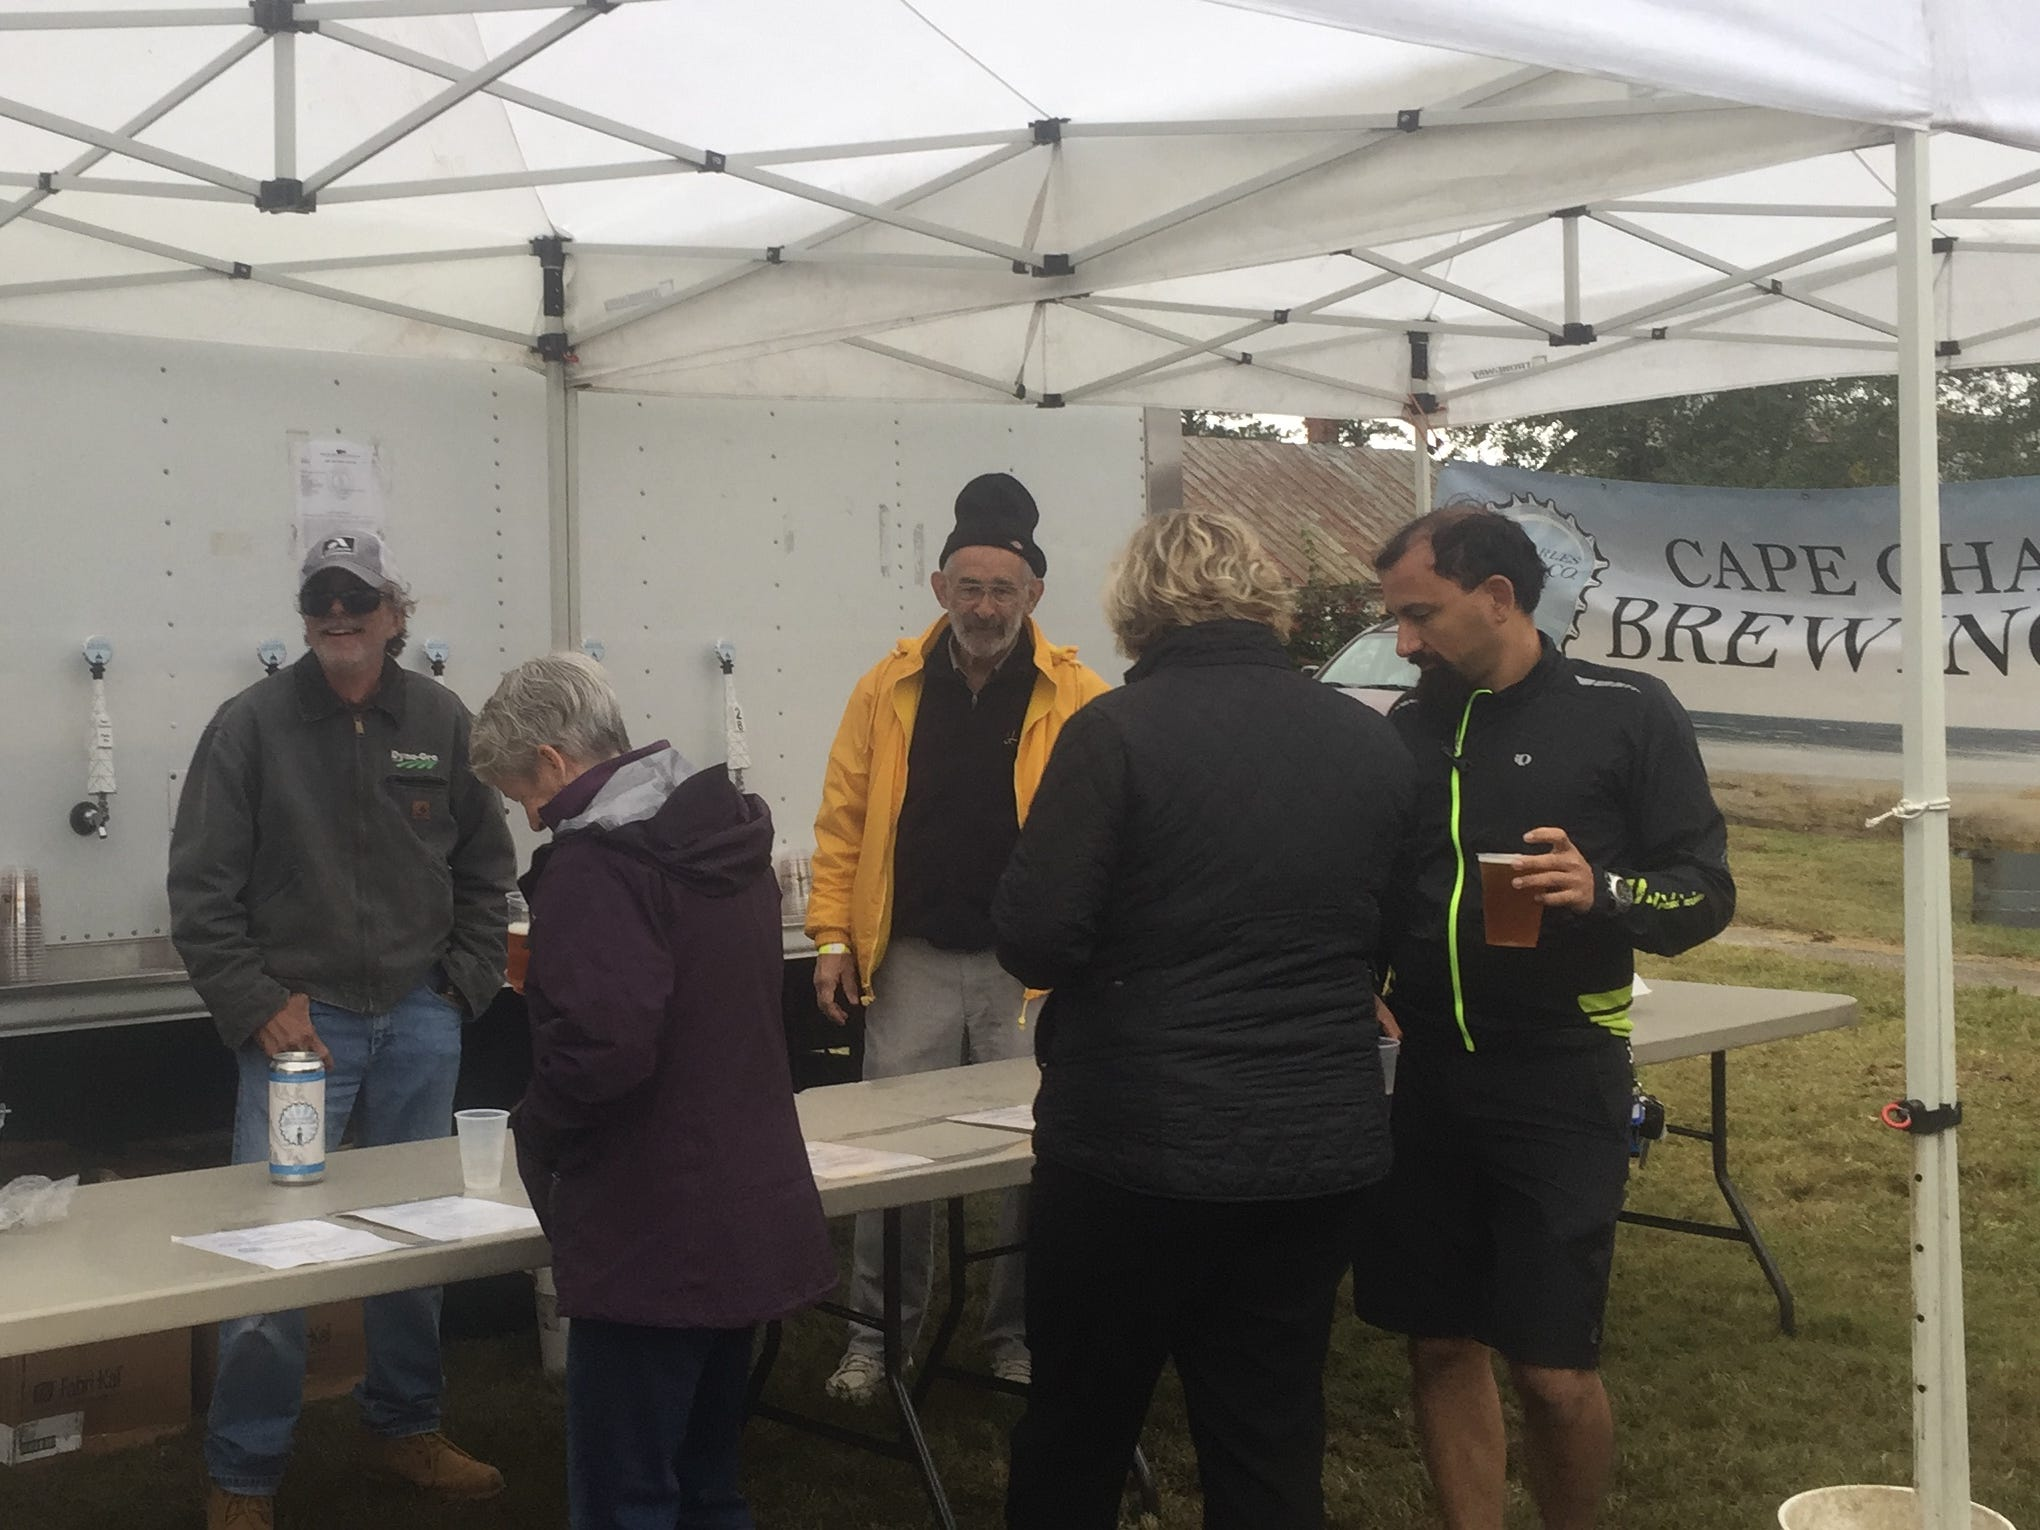 Cape Charles Brewing Co. offered several varieties of beer at the Bike & Brew event at the Historic Onancock School on Saturday, Oct. 27, 2018. The event, held following the CBES Bike Ride, highlighted the Eastern Shore of Virginia's two breweries, Black Narrows Brewing Co. and Cape Charles Brewing Co.